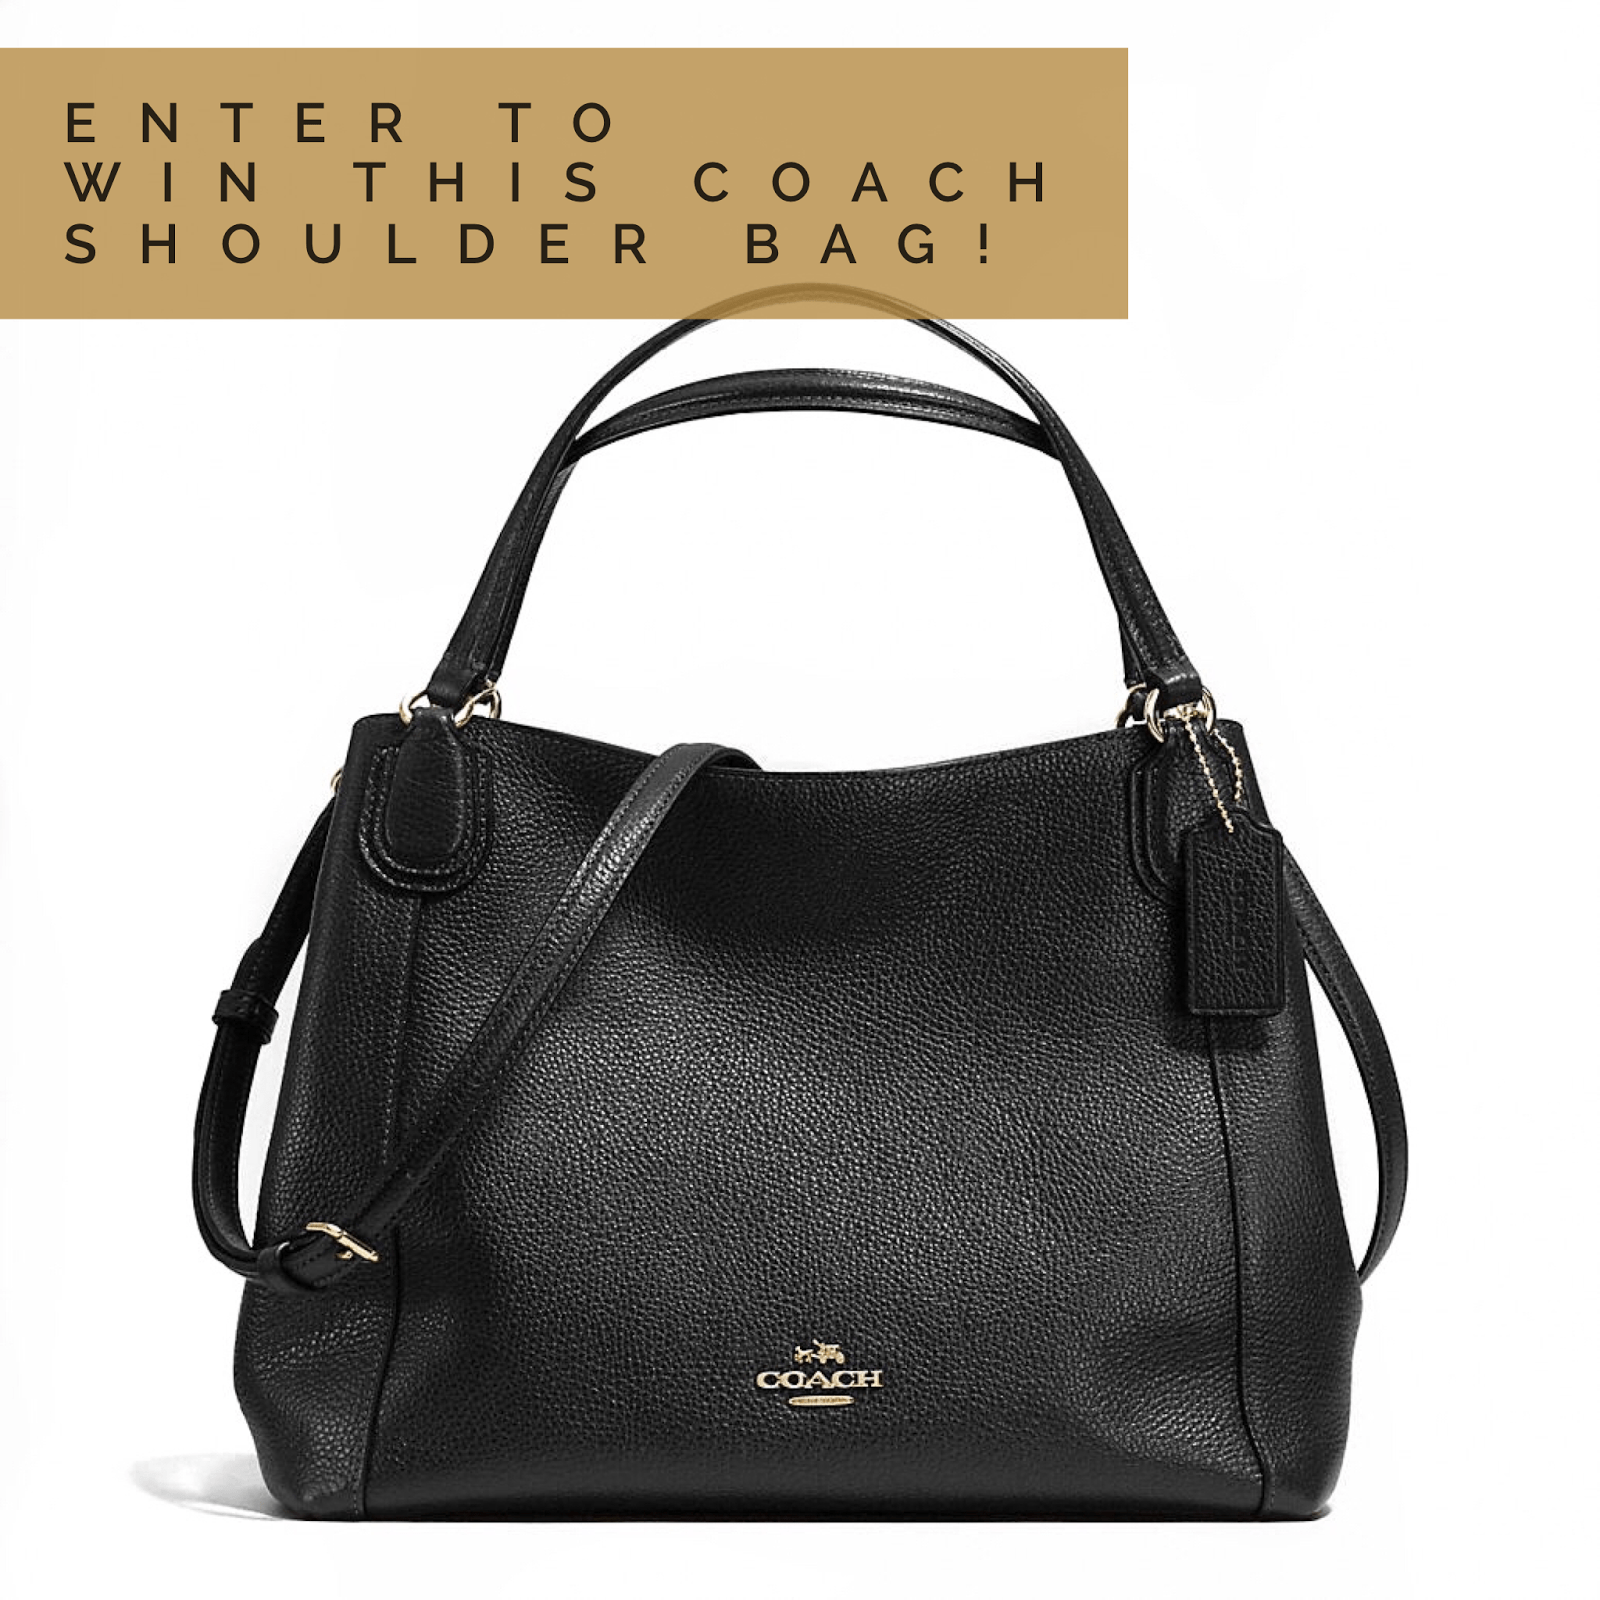 Coach Shoulder Bag Giveaway